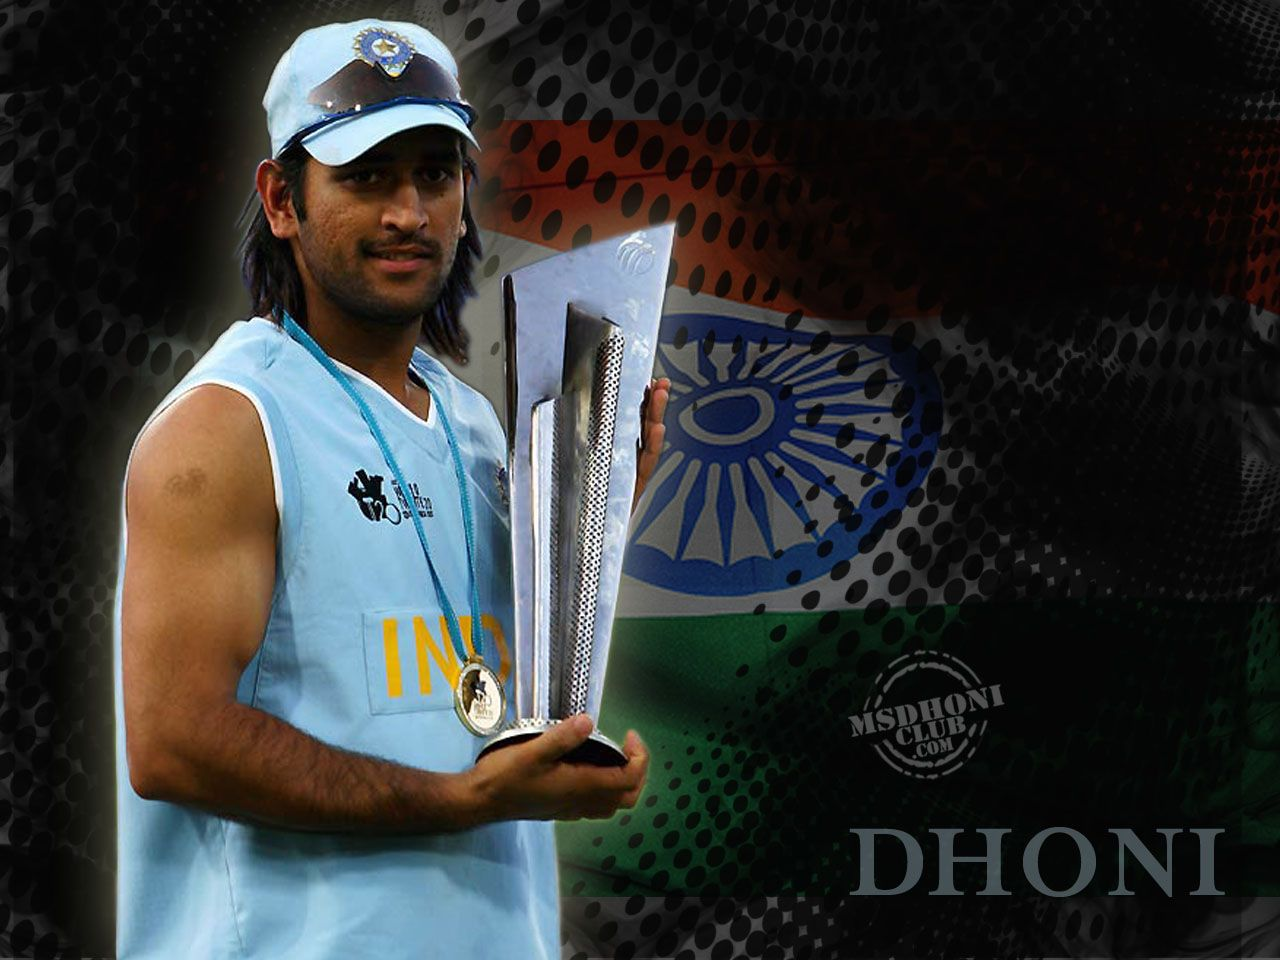 Ms Dhoni New Wallpapers Group